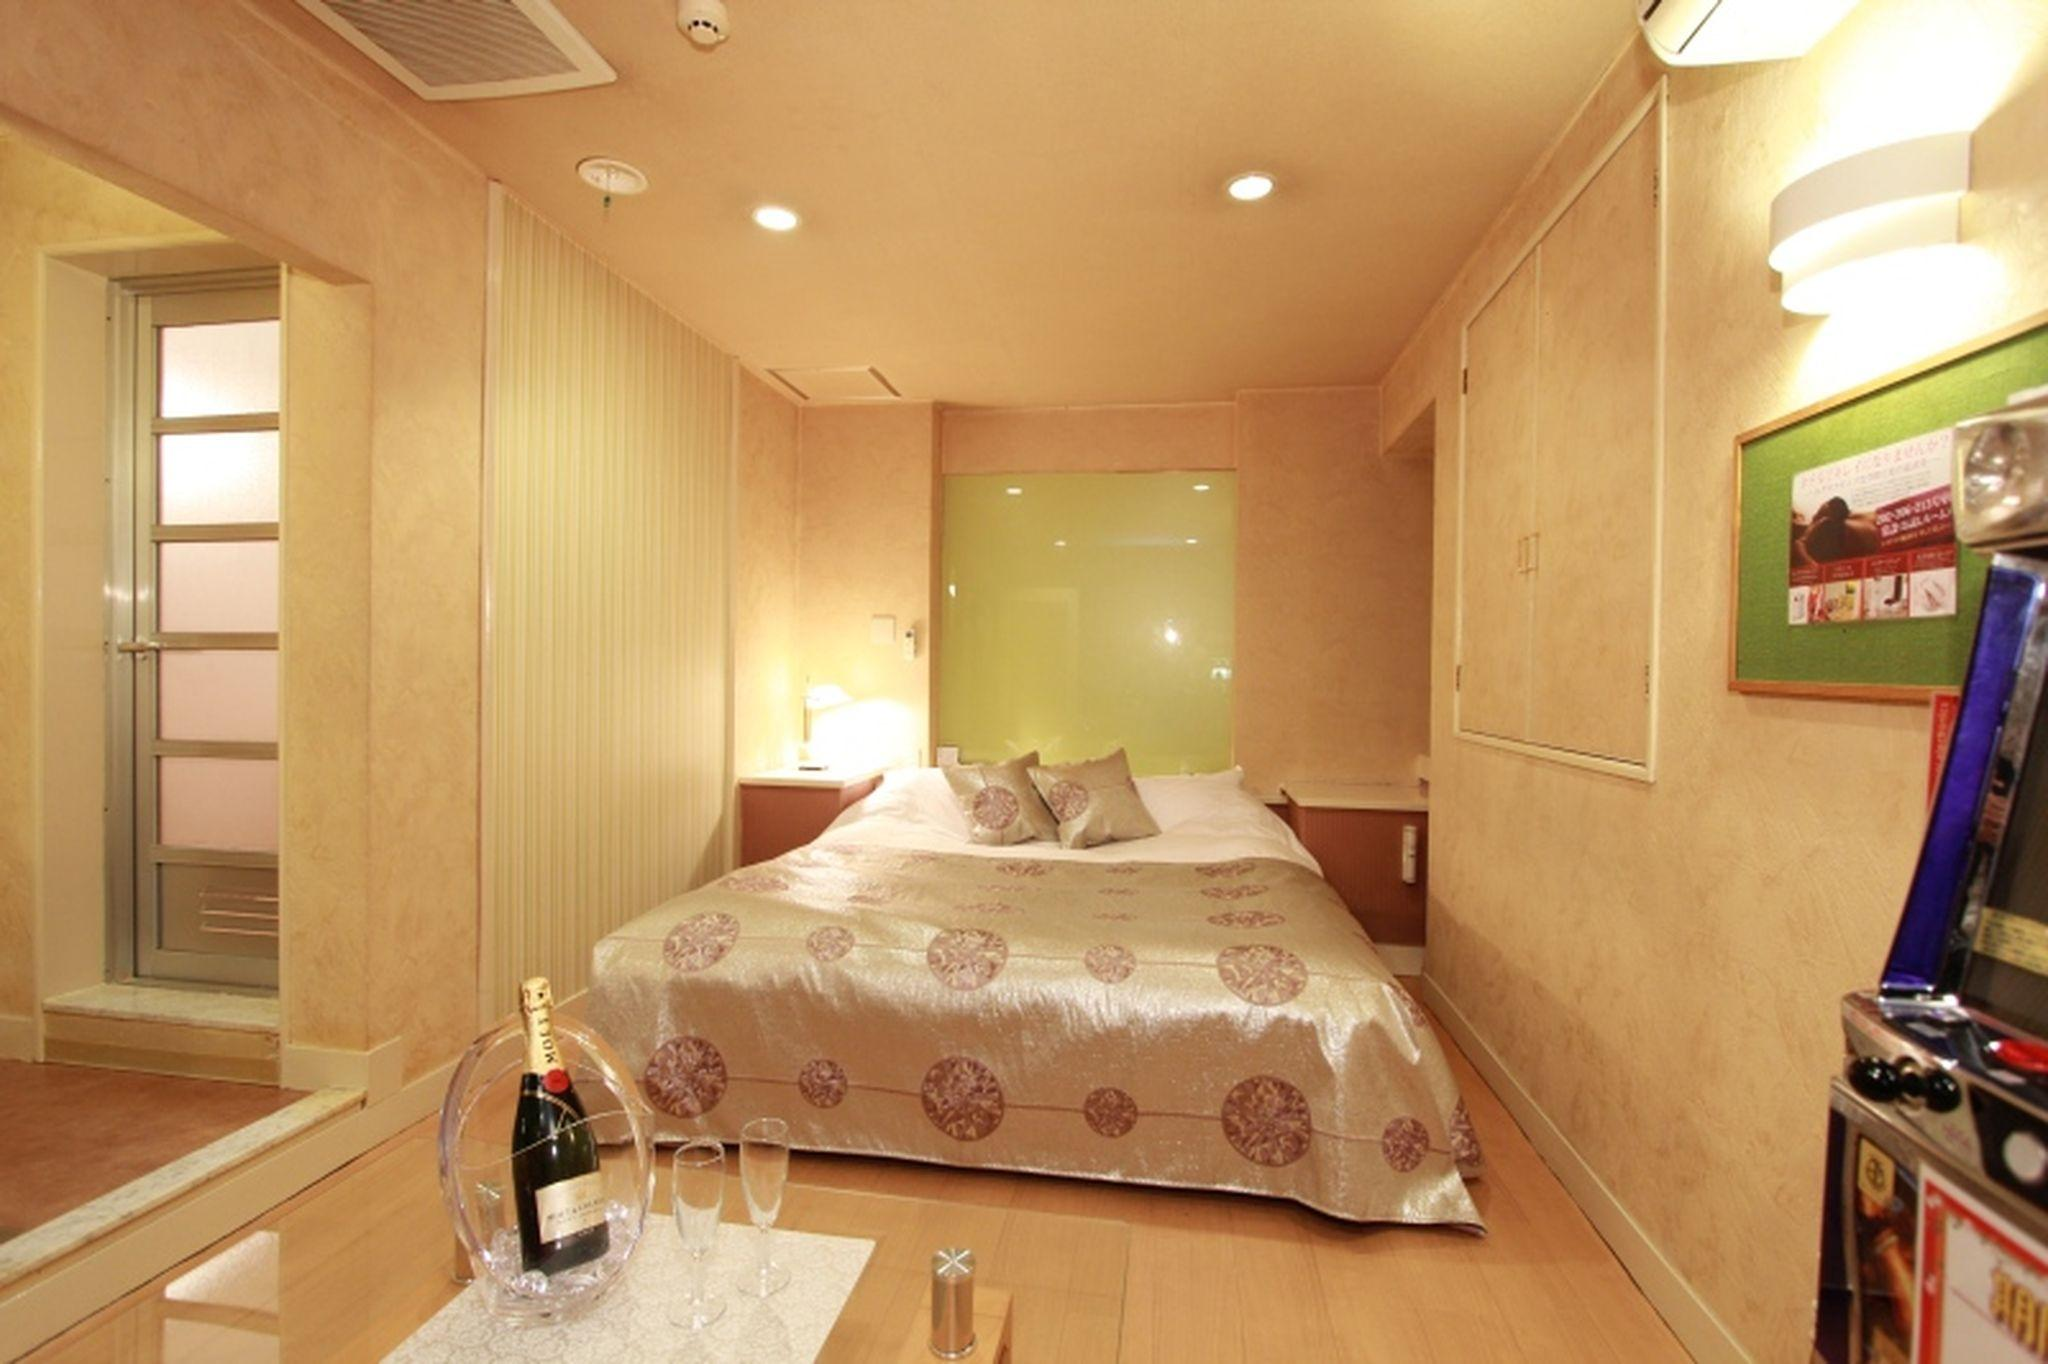 Restay Mito (Adults Only), Mito